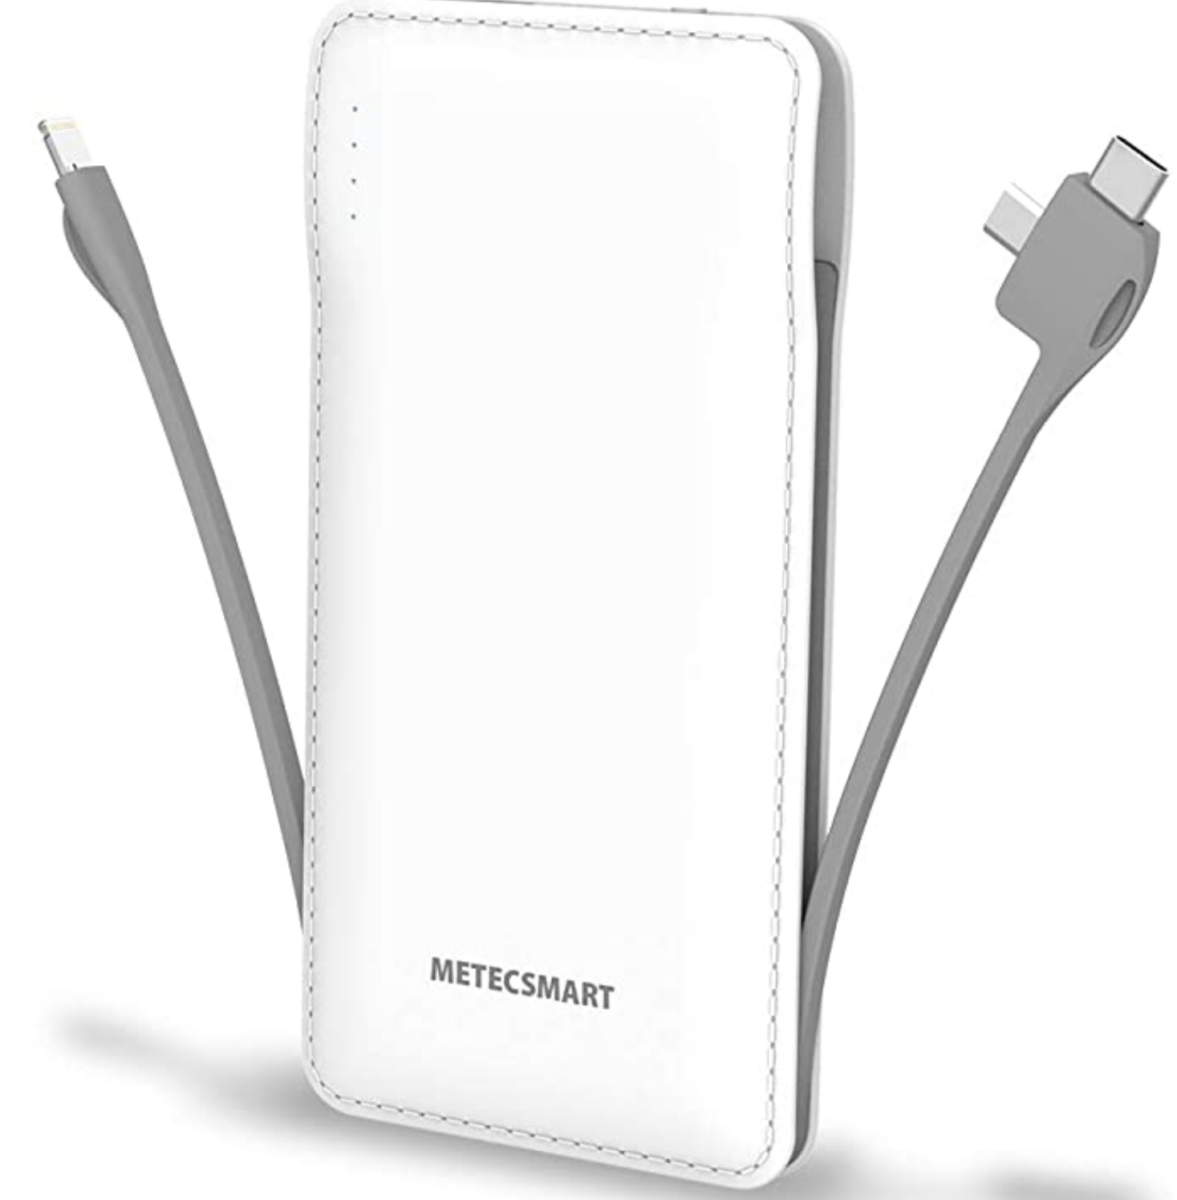 amazon phone charger   Best Amazon Products by popular Houston life and style blog: image of a portable charger with cords.